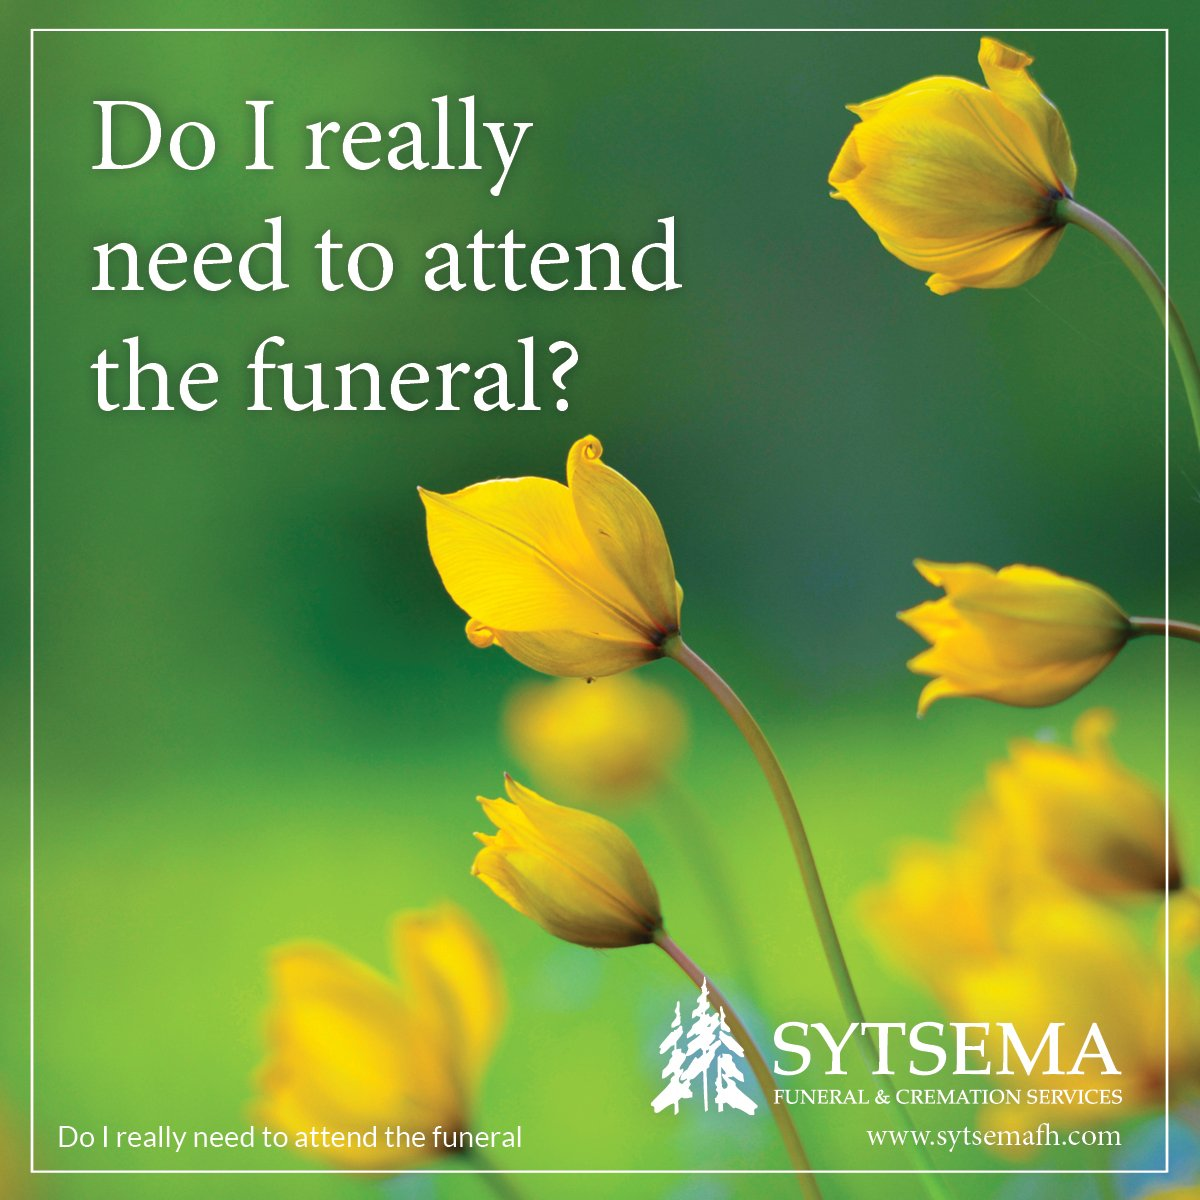 Do I really need to attend the funeral?